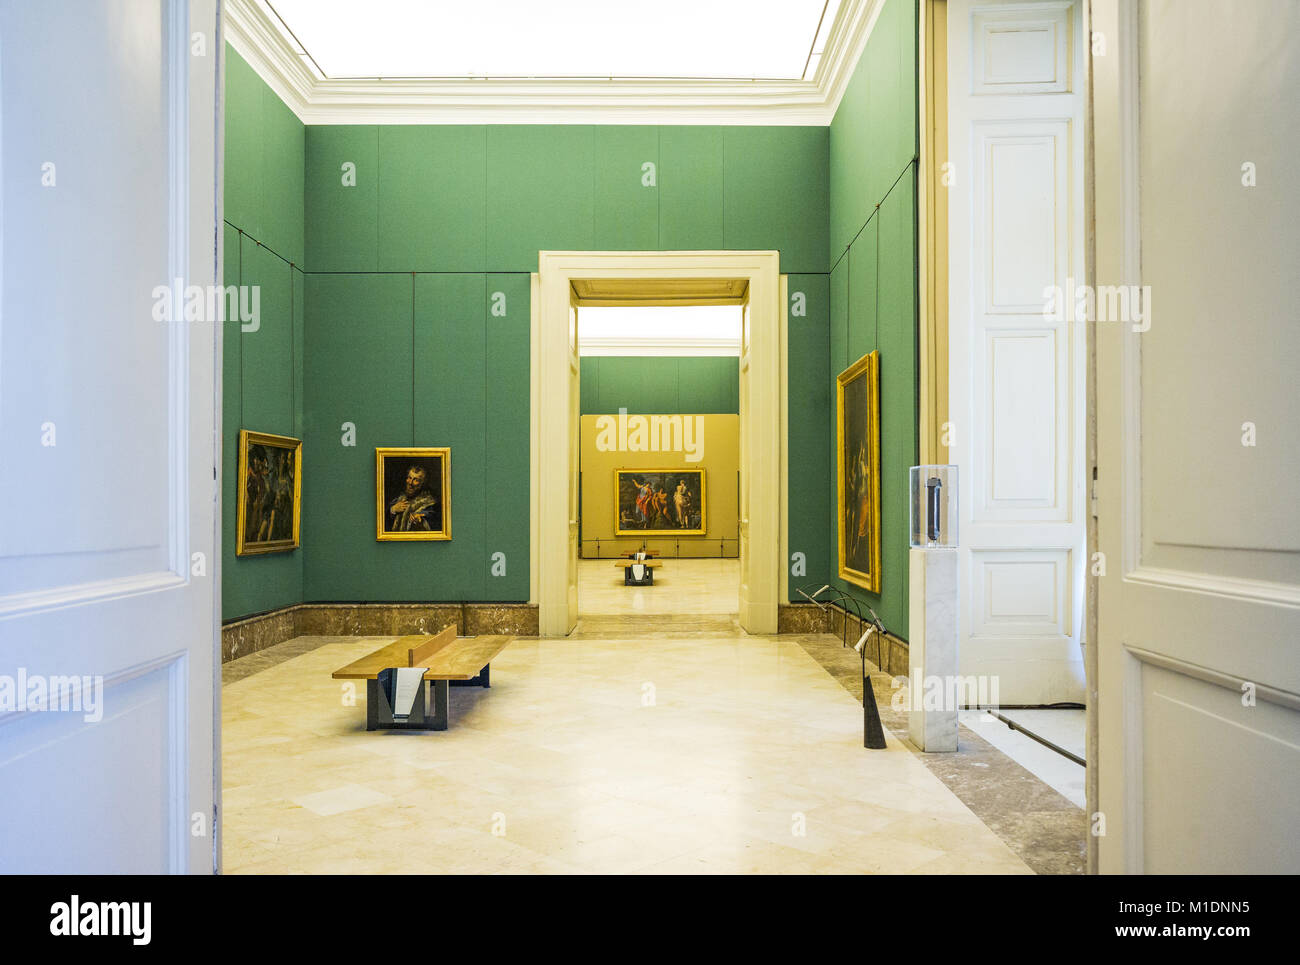 Capodimonte Stock Photos & Capodimonte Stock Images - Alamy